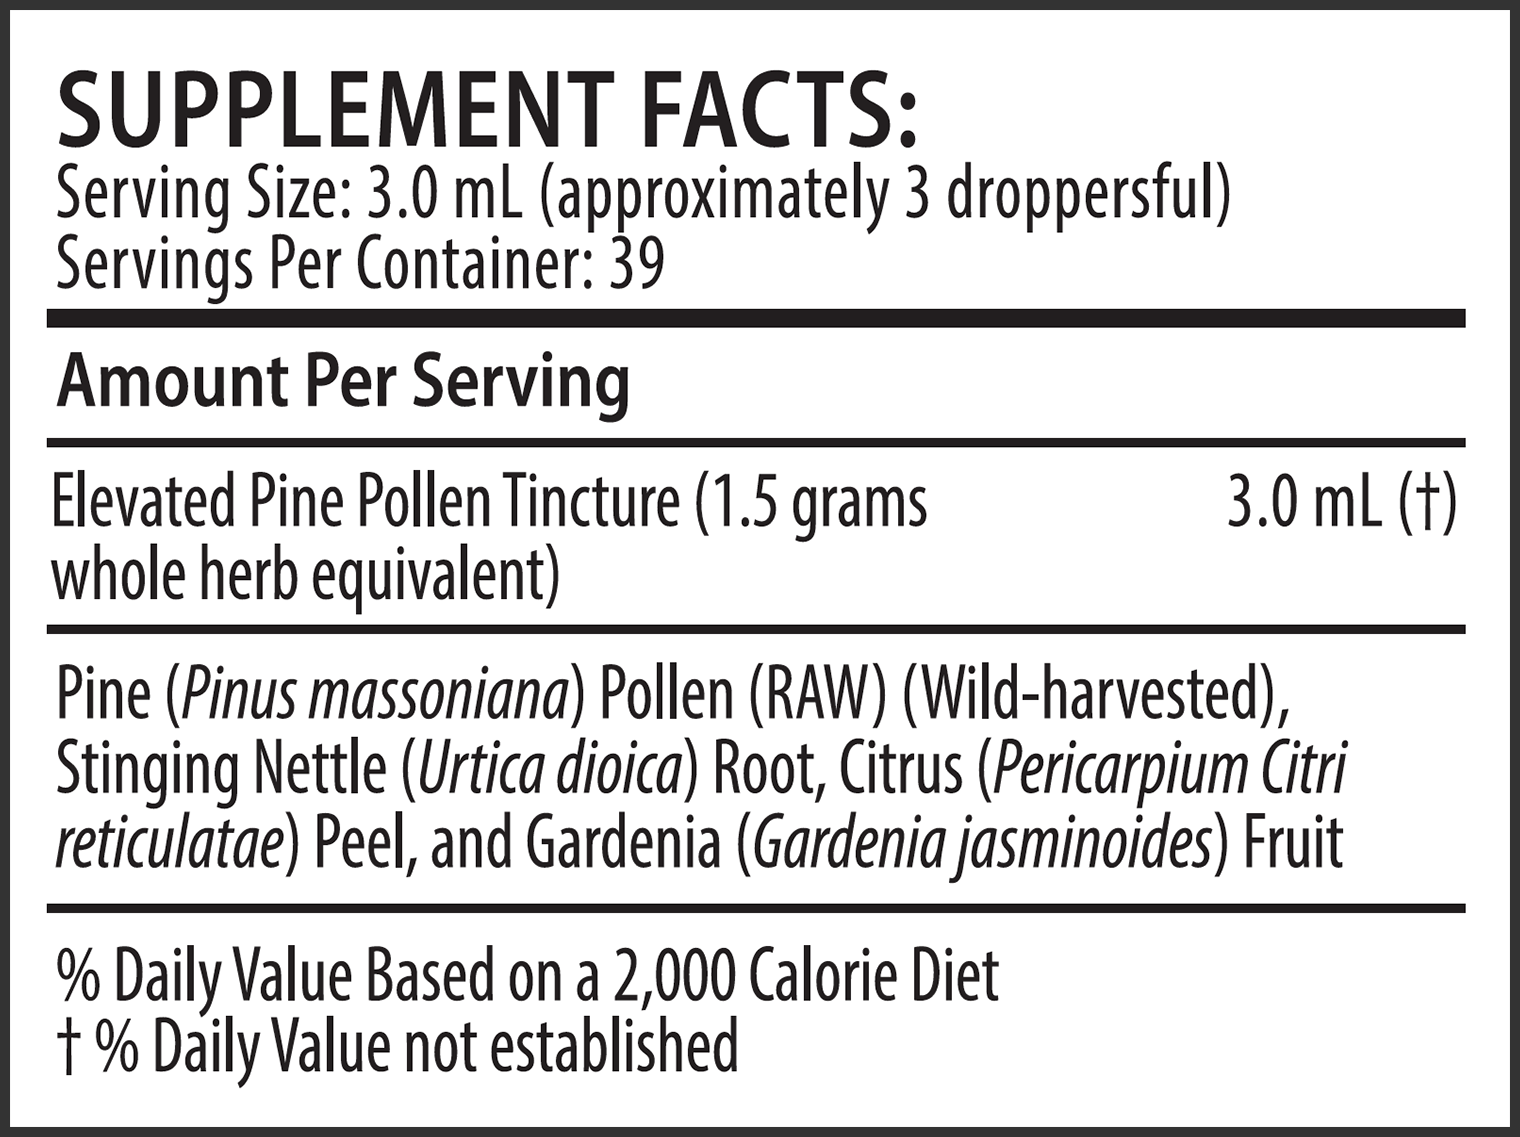 Elevated Pine Pollen Tincture 4 Ounce Supplement Facts